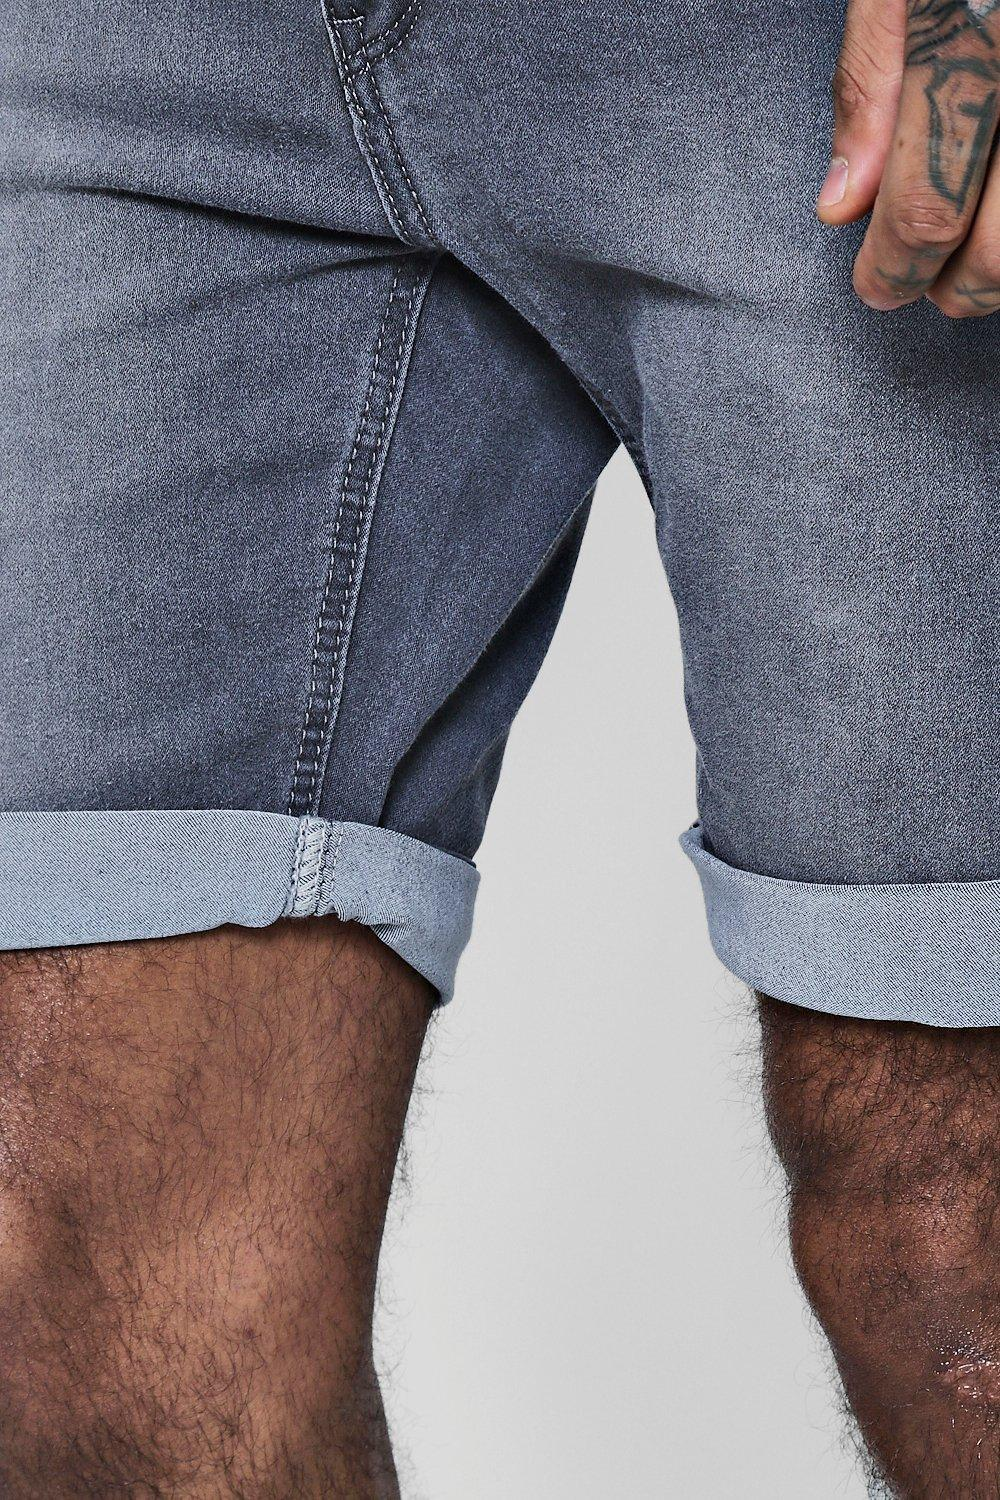 charcoal Fit Denim Shorts Charcoal Skinny Washed w0FXgqqd